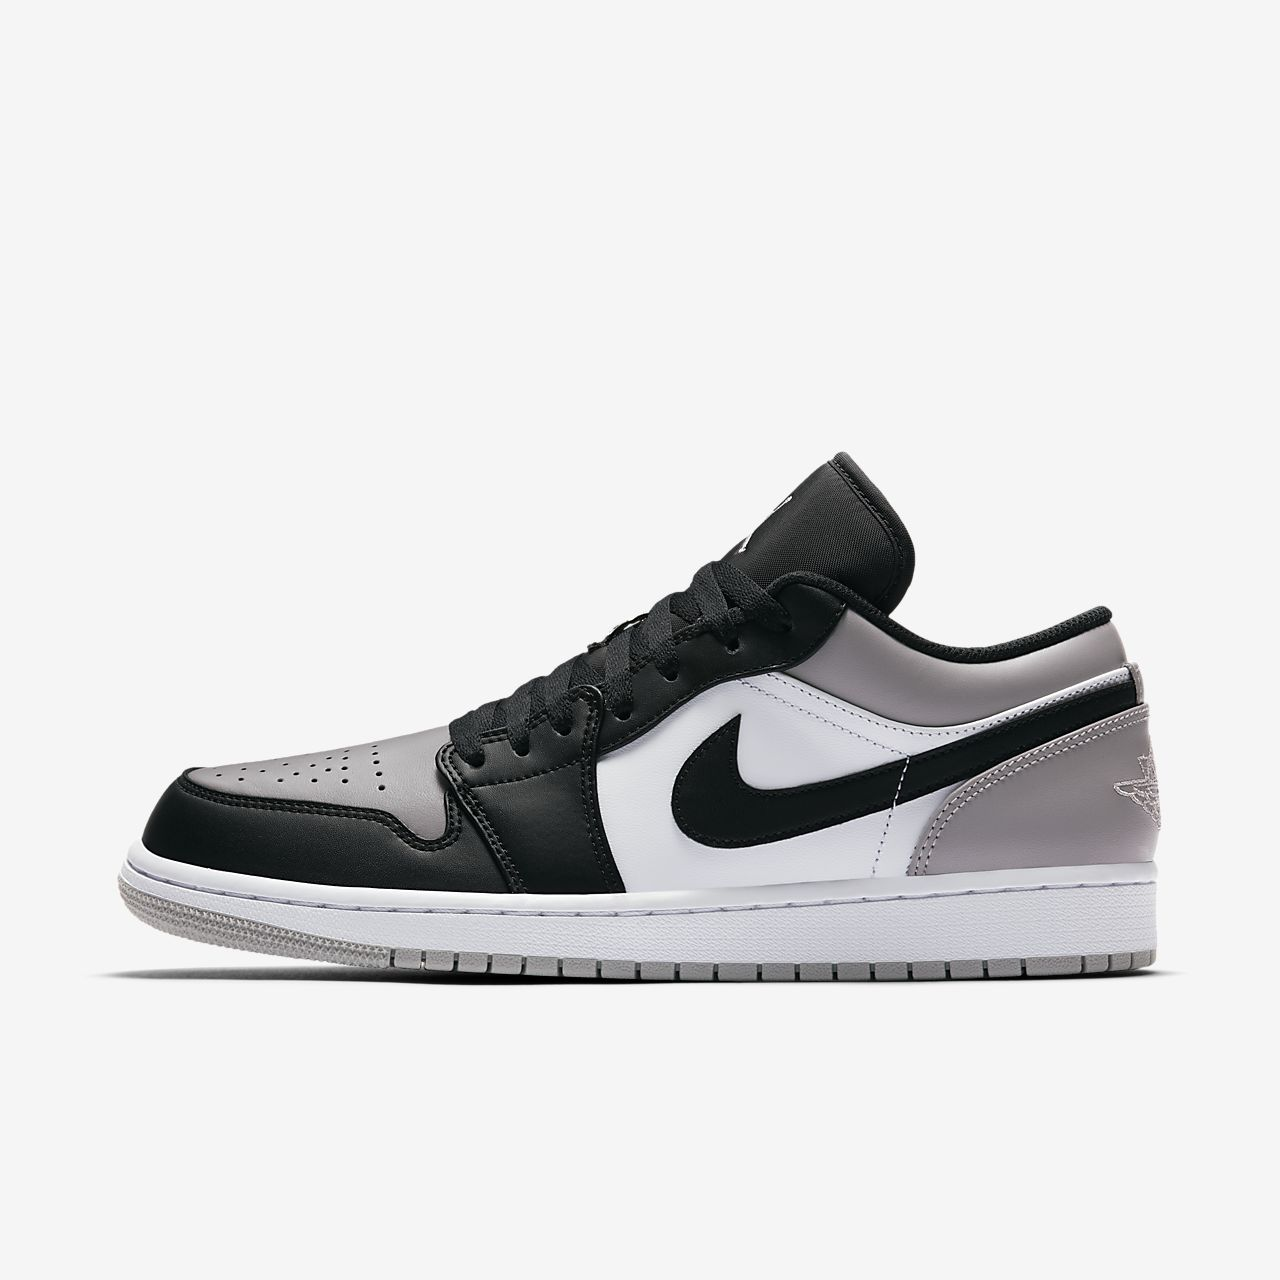 NIKE Jordan Air Jordan 1 Low Scarpa Basket